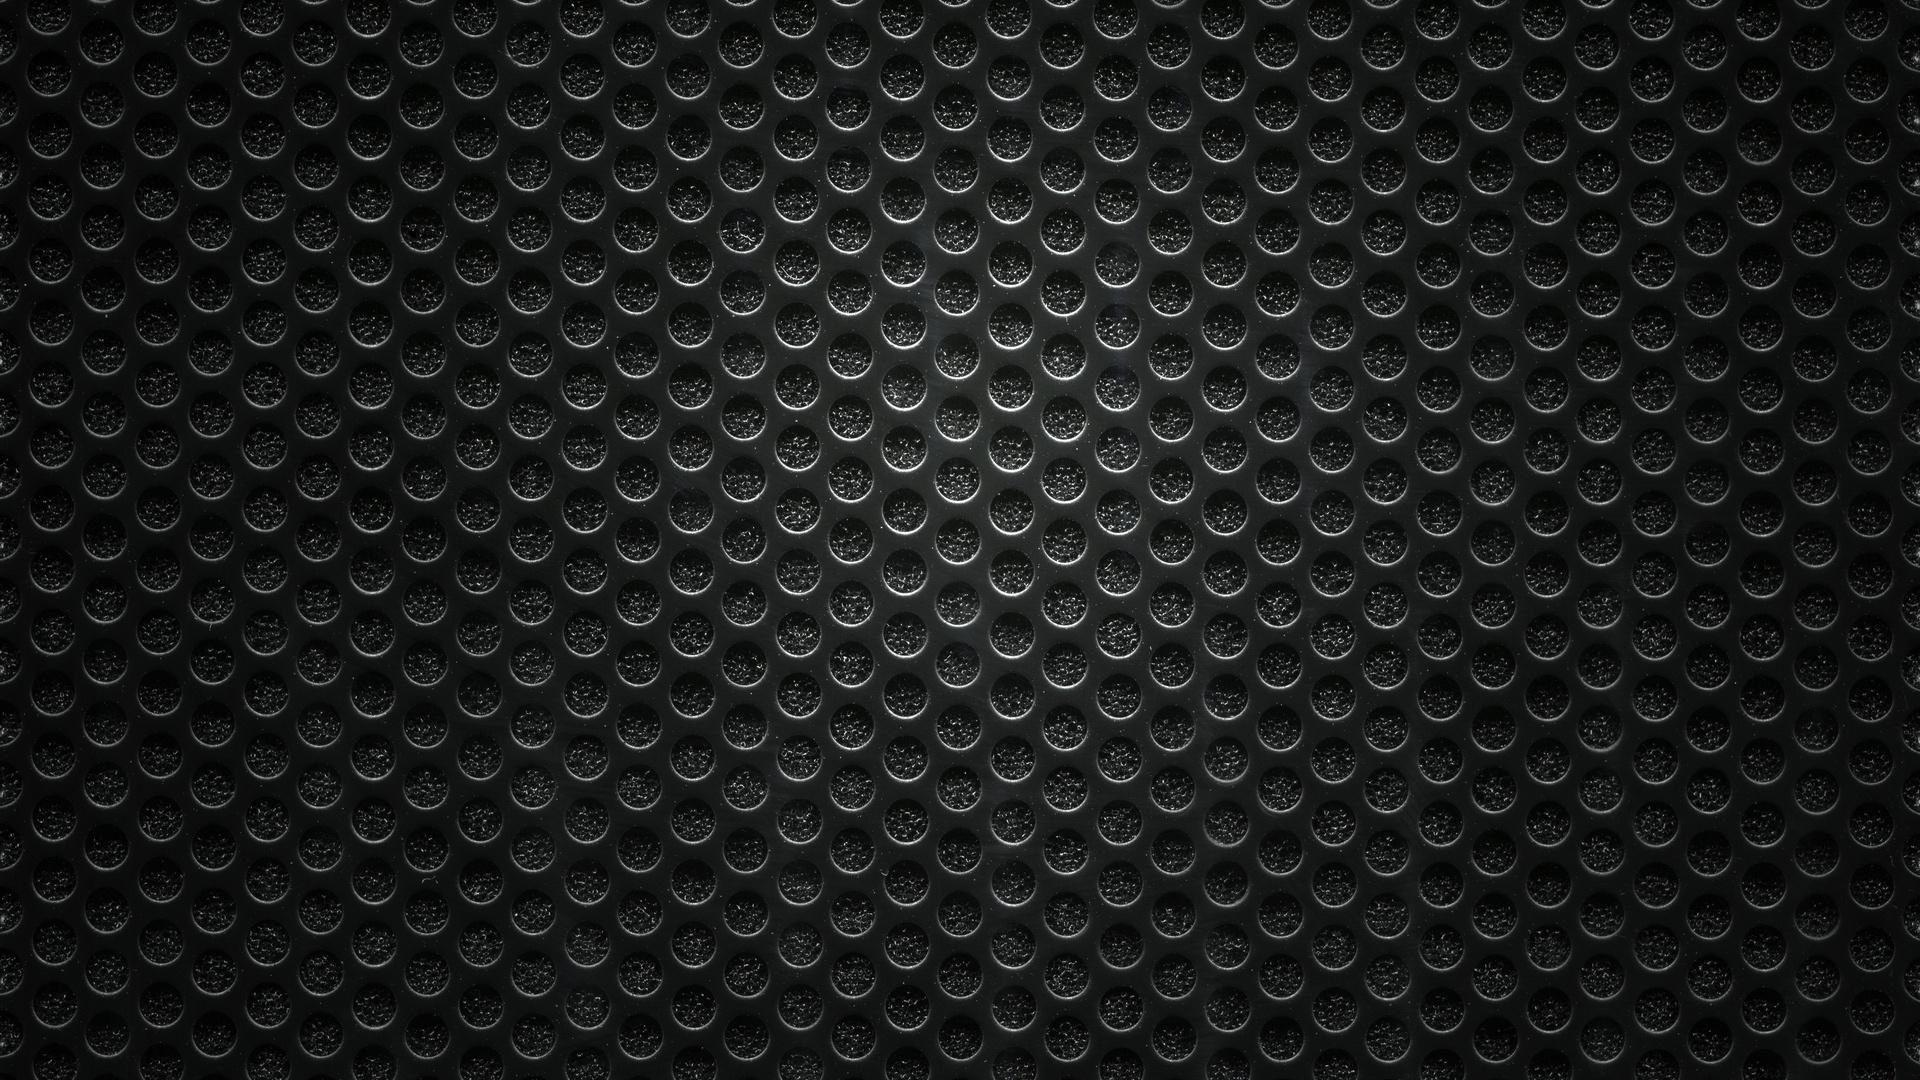 Download 6000 Wallpaper Black For Android HD Paling Keren